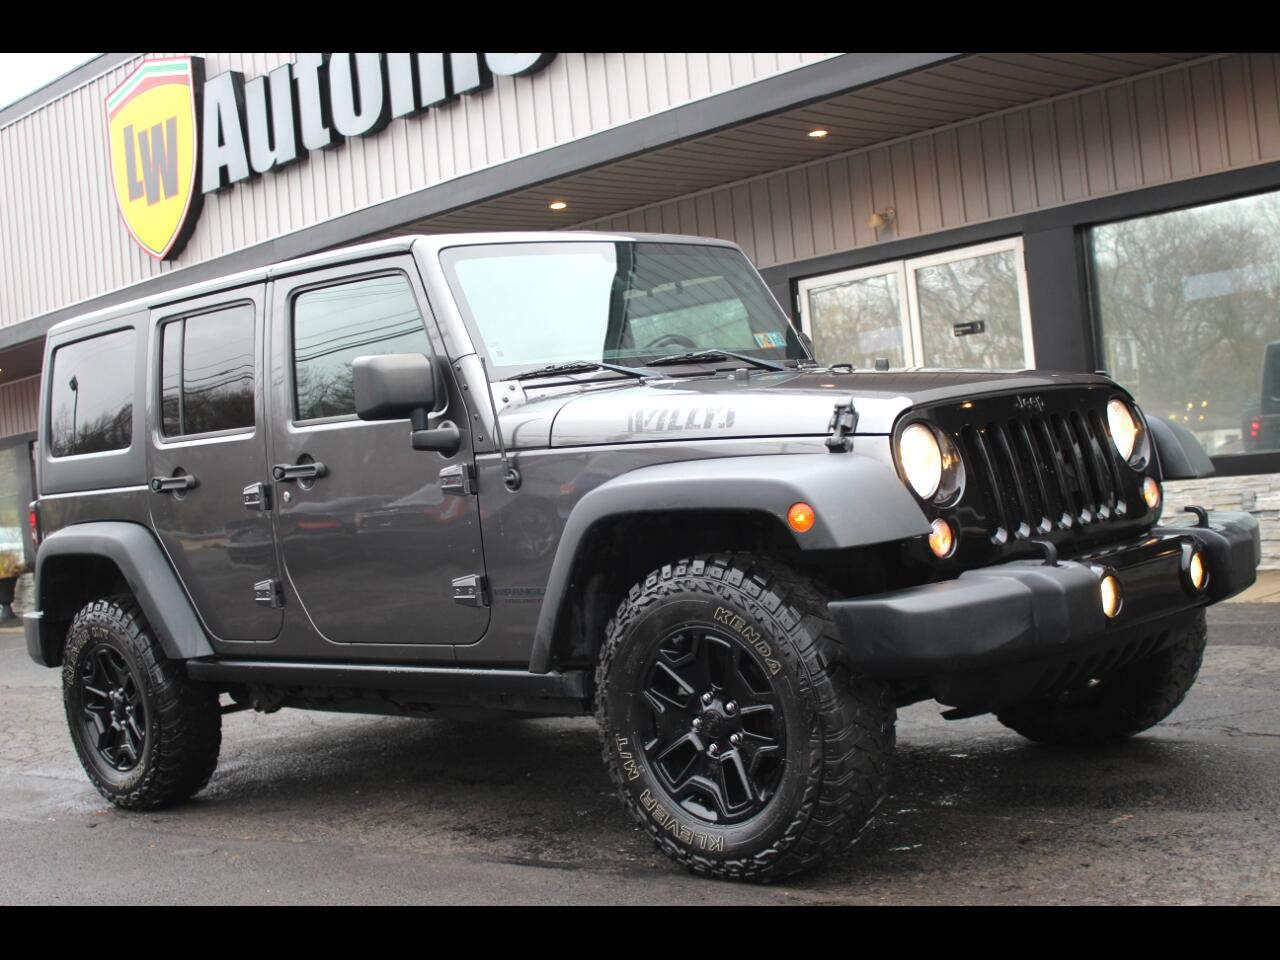 2014 Jeep Wrangler Willys Wheeler Unlimted 4WD